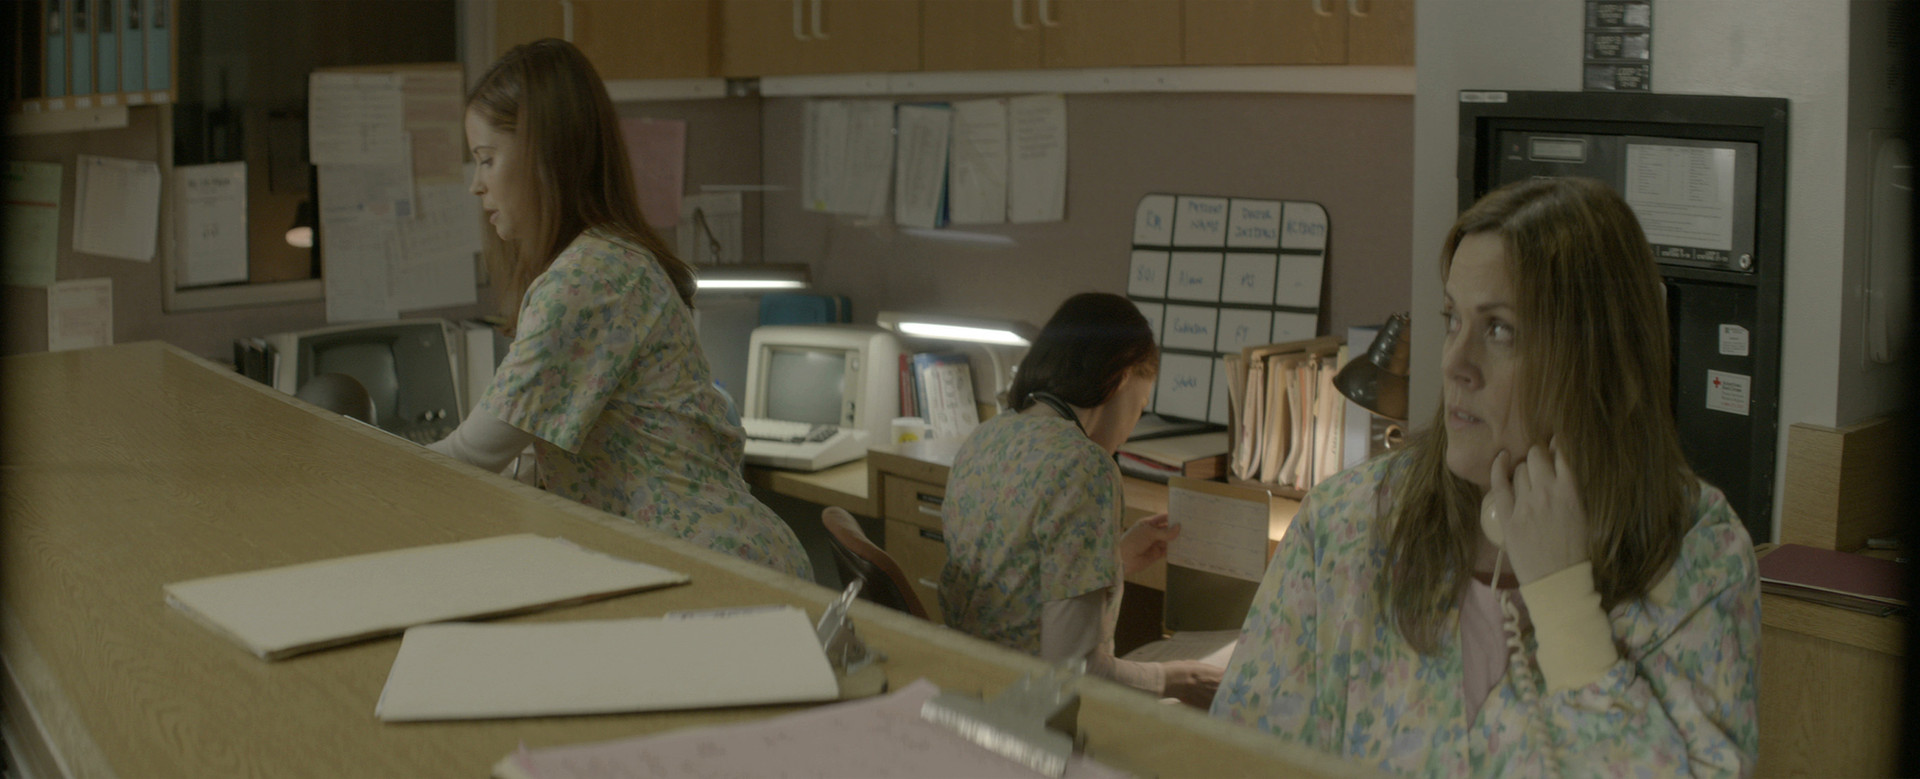 Nurses-station-4 copy.jpg